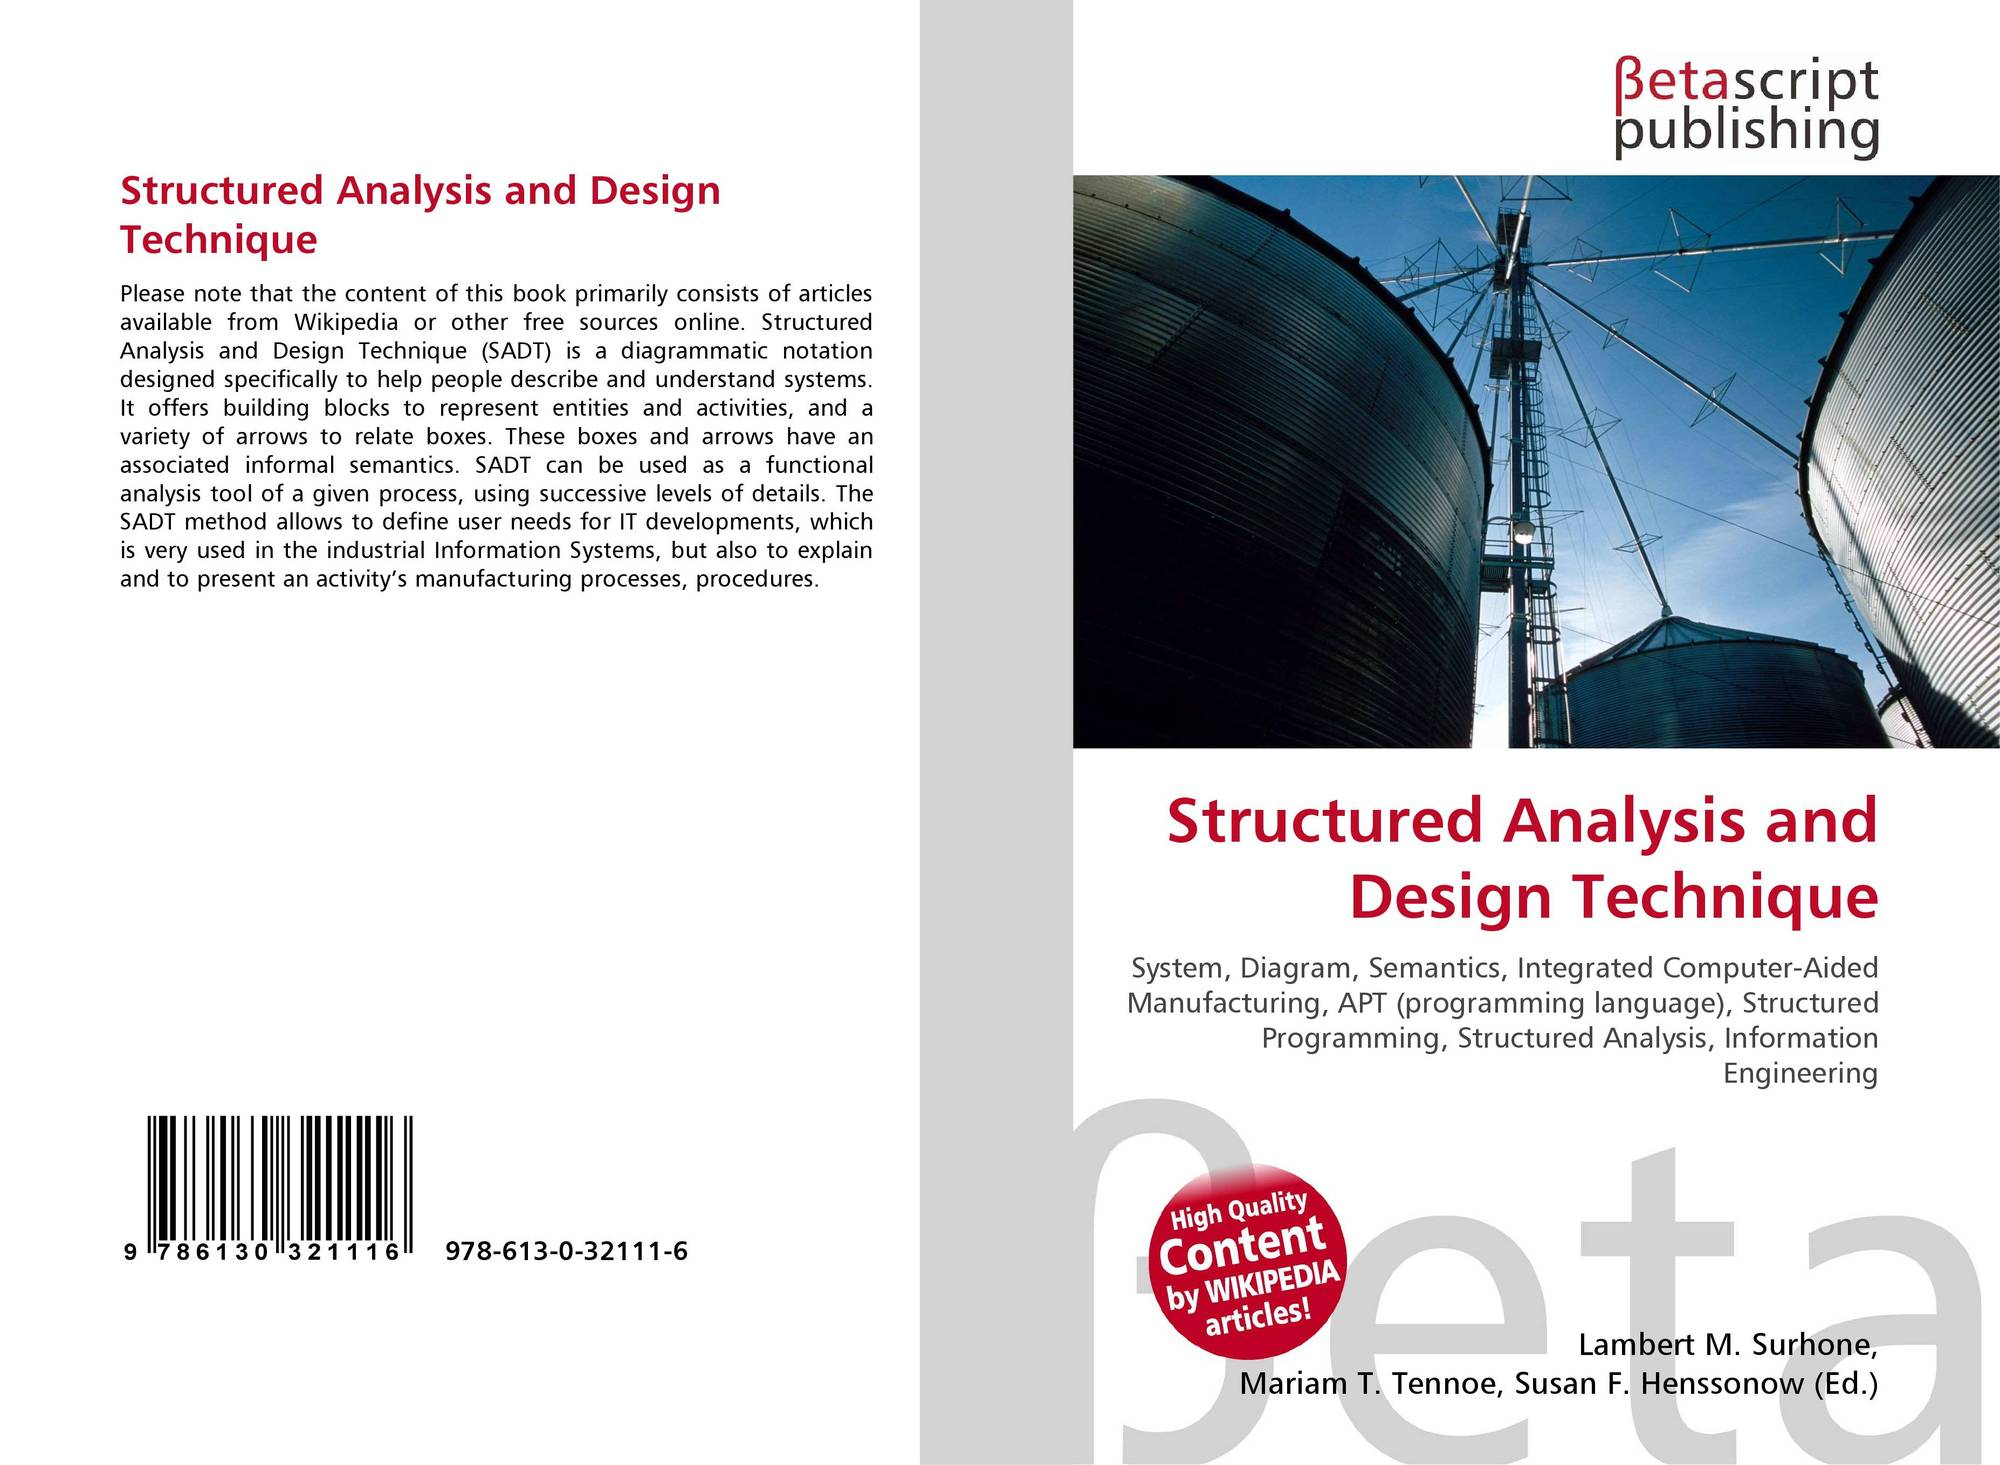 Structured Analysis And Design Technique 978 613 0 32111 6 6130321112 9786130321116